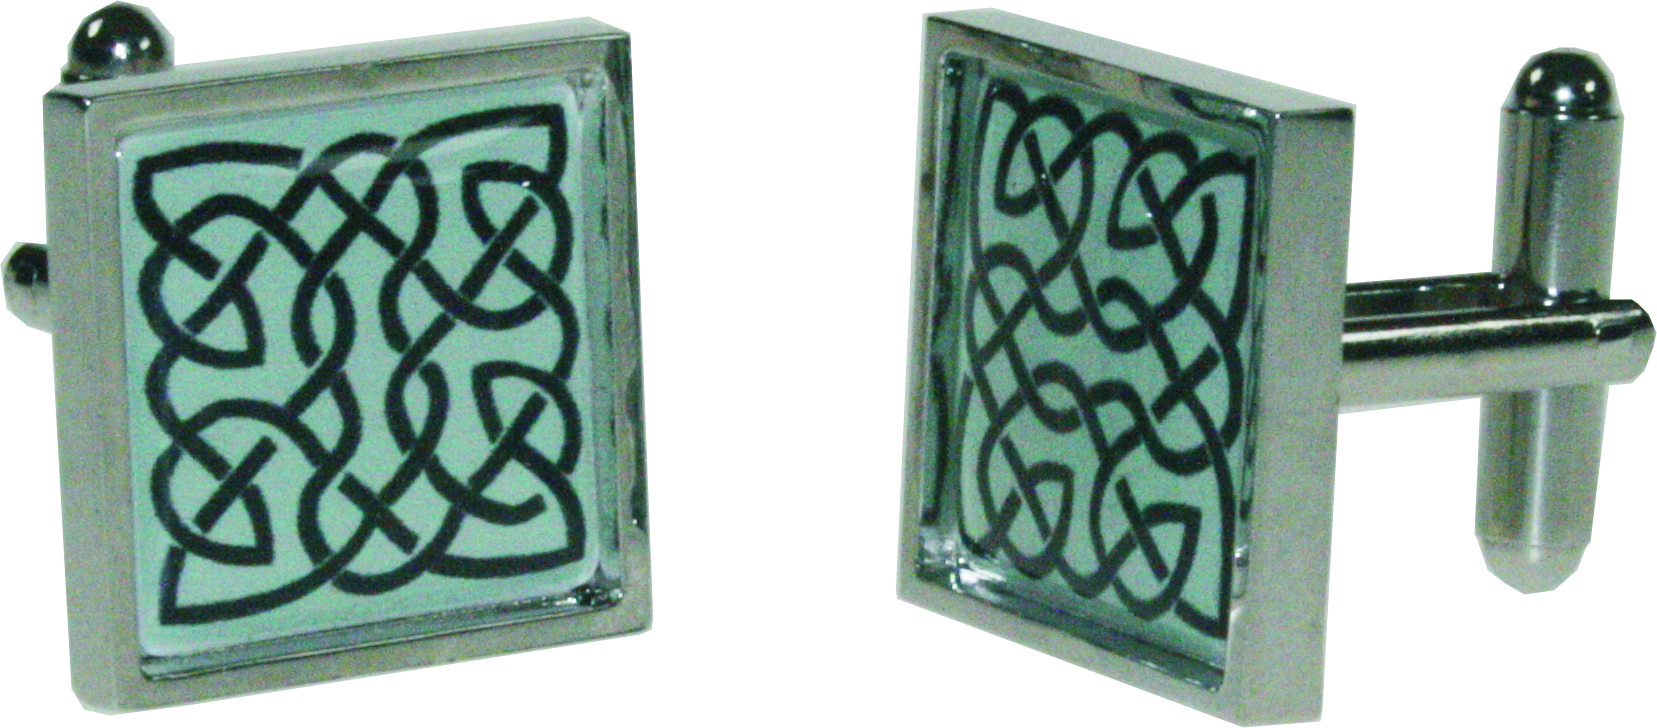 "Square Celtic Green Nickel Plated Cuff links in Snap Hinged Box 2.5cm dia (1"")"